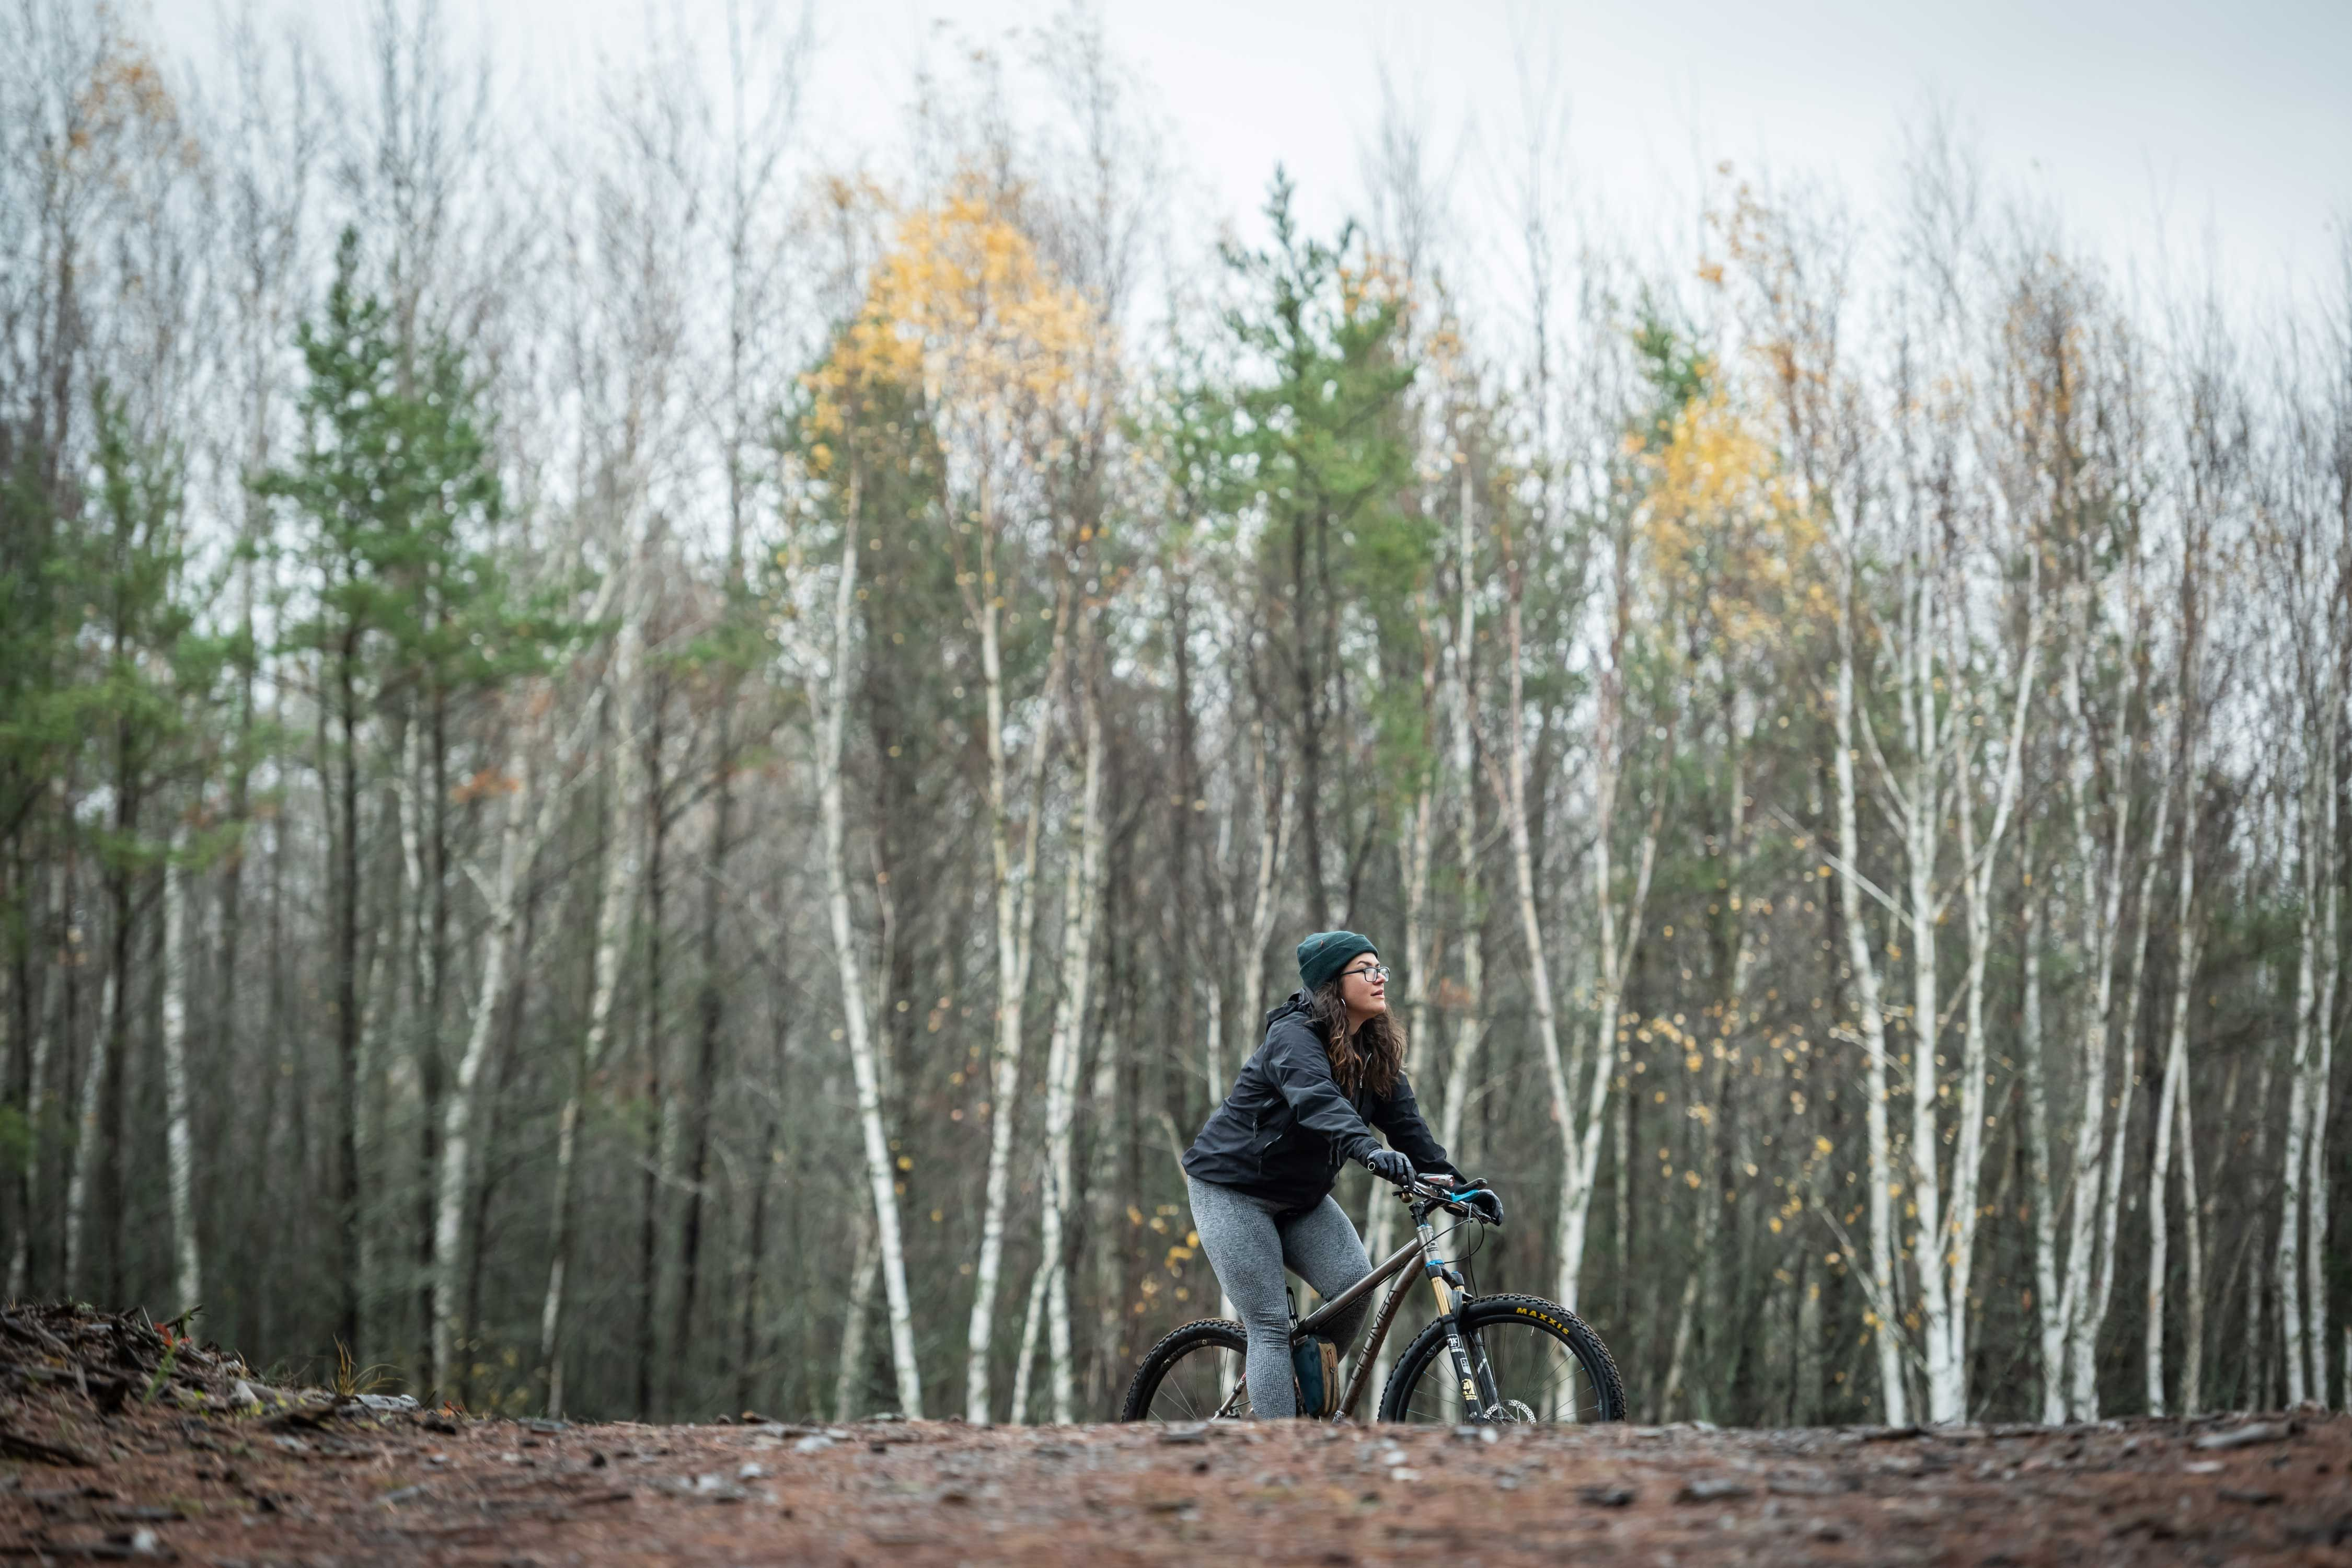 Alexandera Houchin rides her bike at the Cloquet Forestry Center in Cloquet, MN.